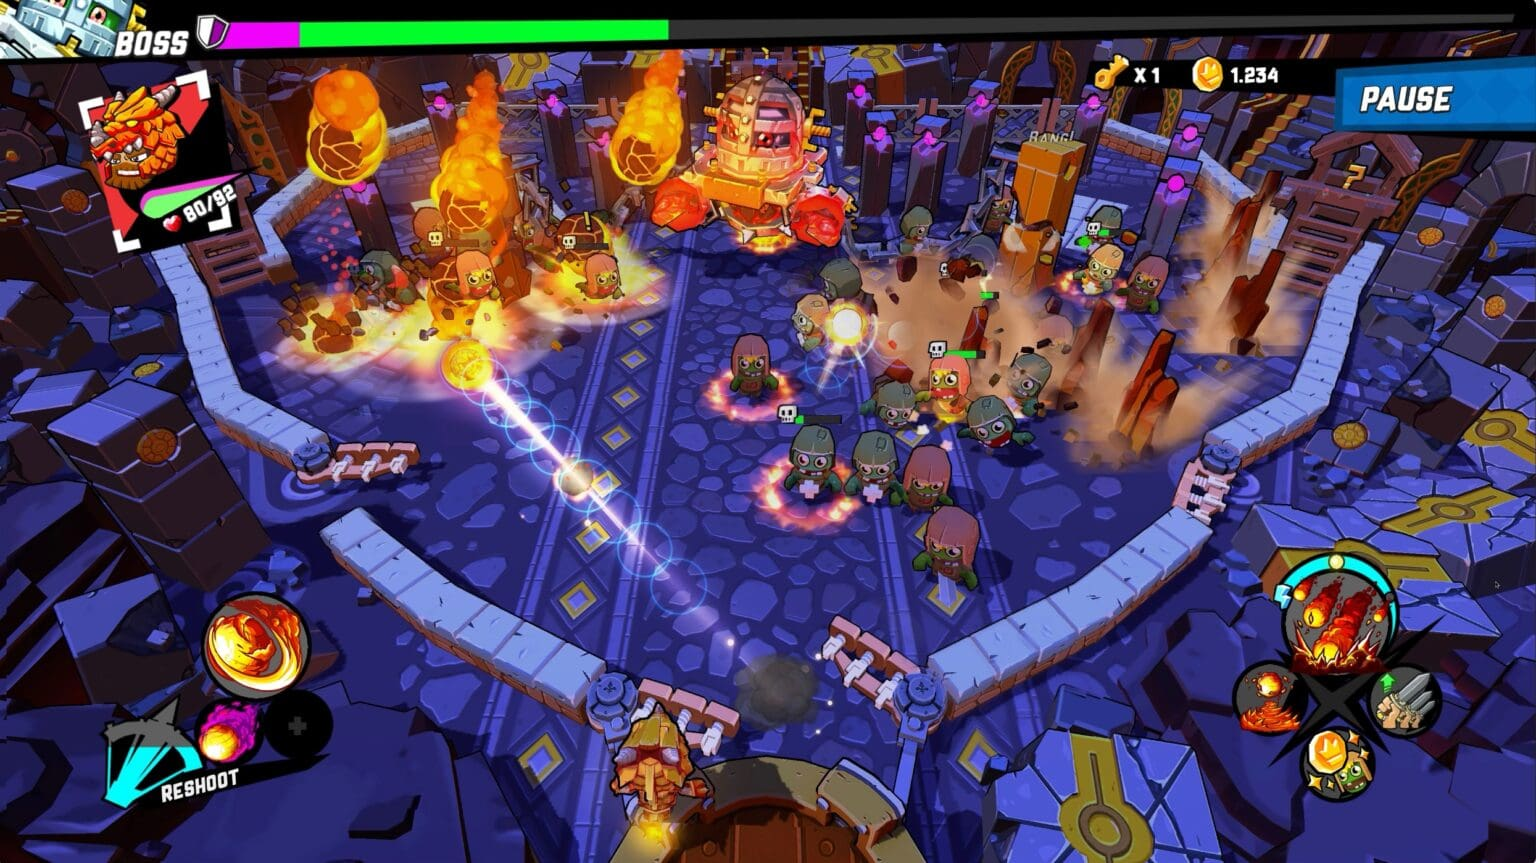 ' Zombie Rollerz: Pinball Heroes' rolls onto Apple Arcade on Friday